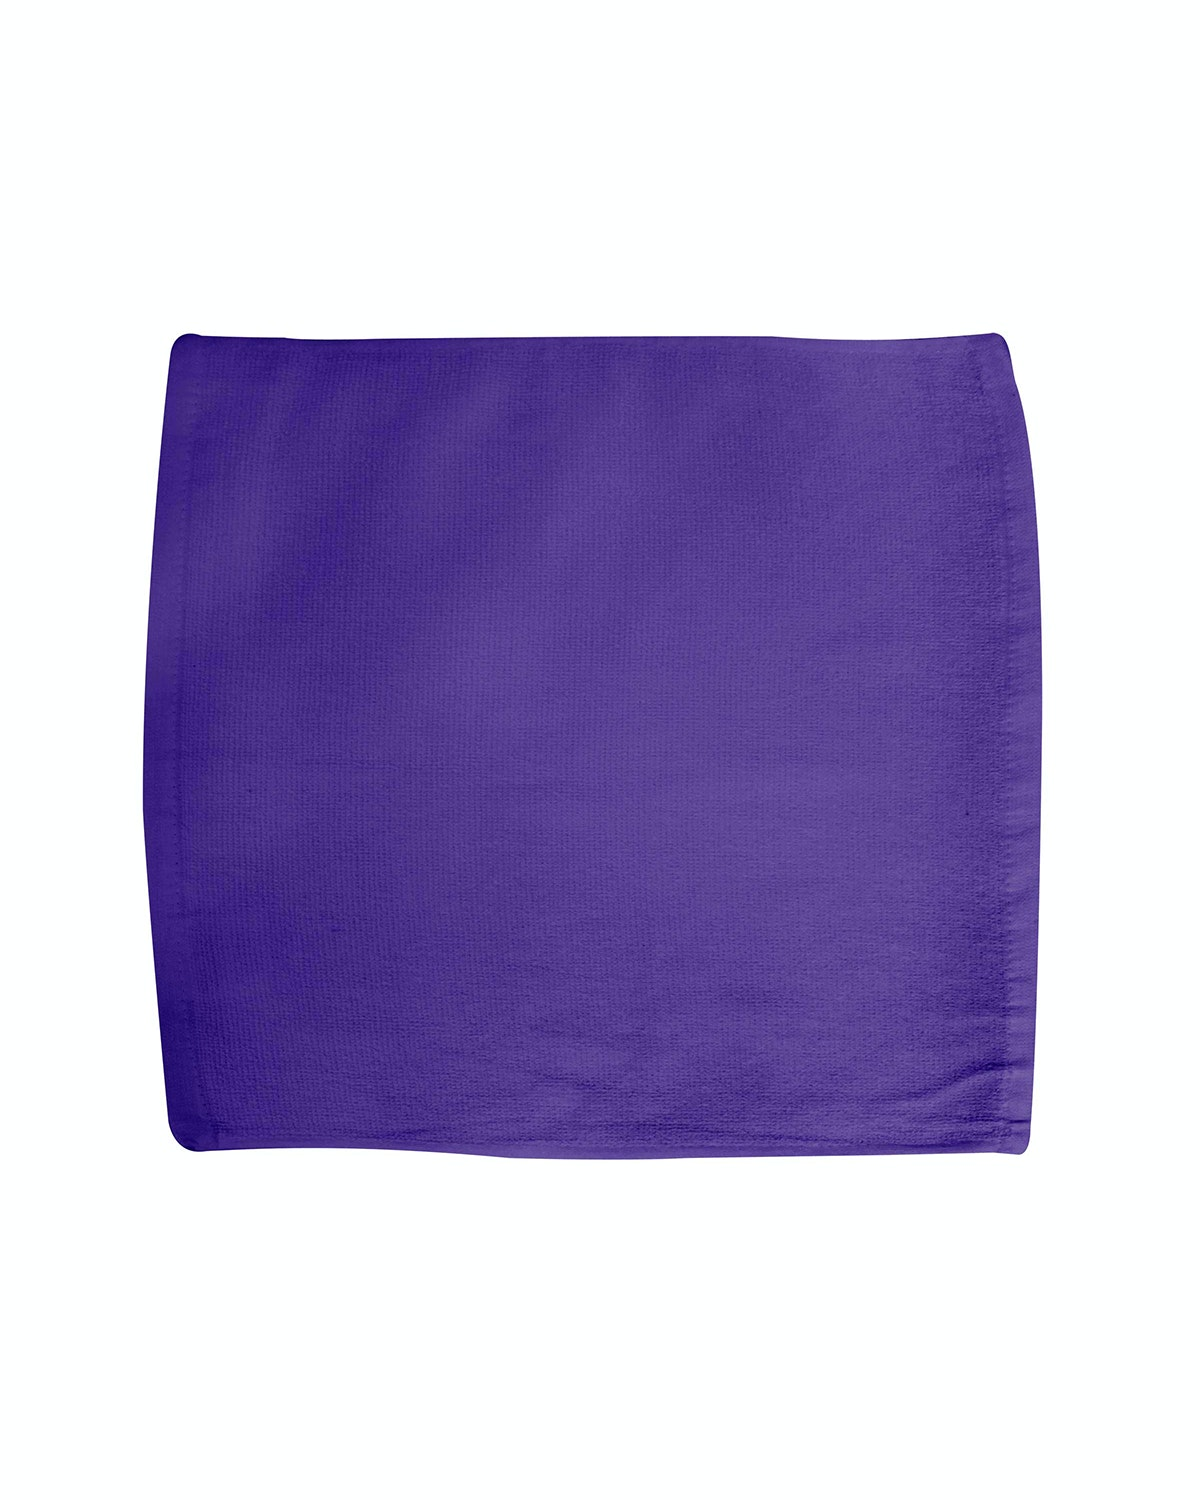 Carmel Towel Company C1515 Purple